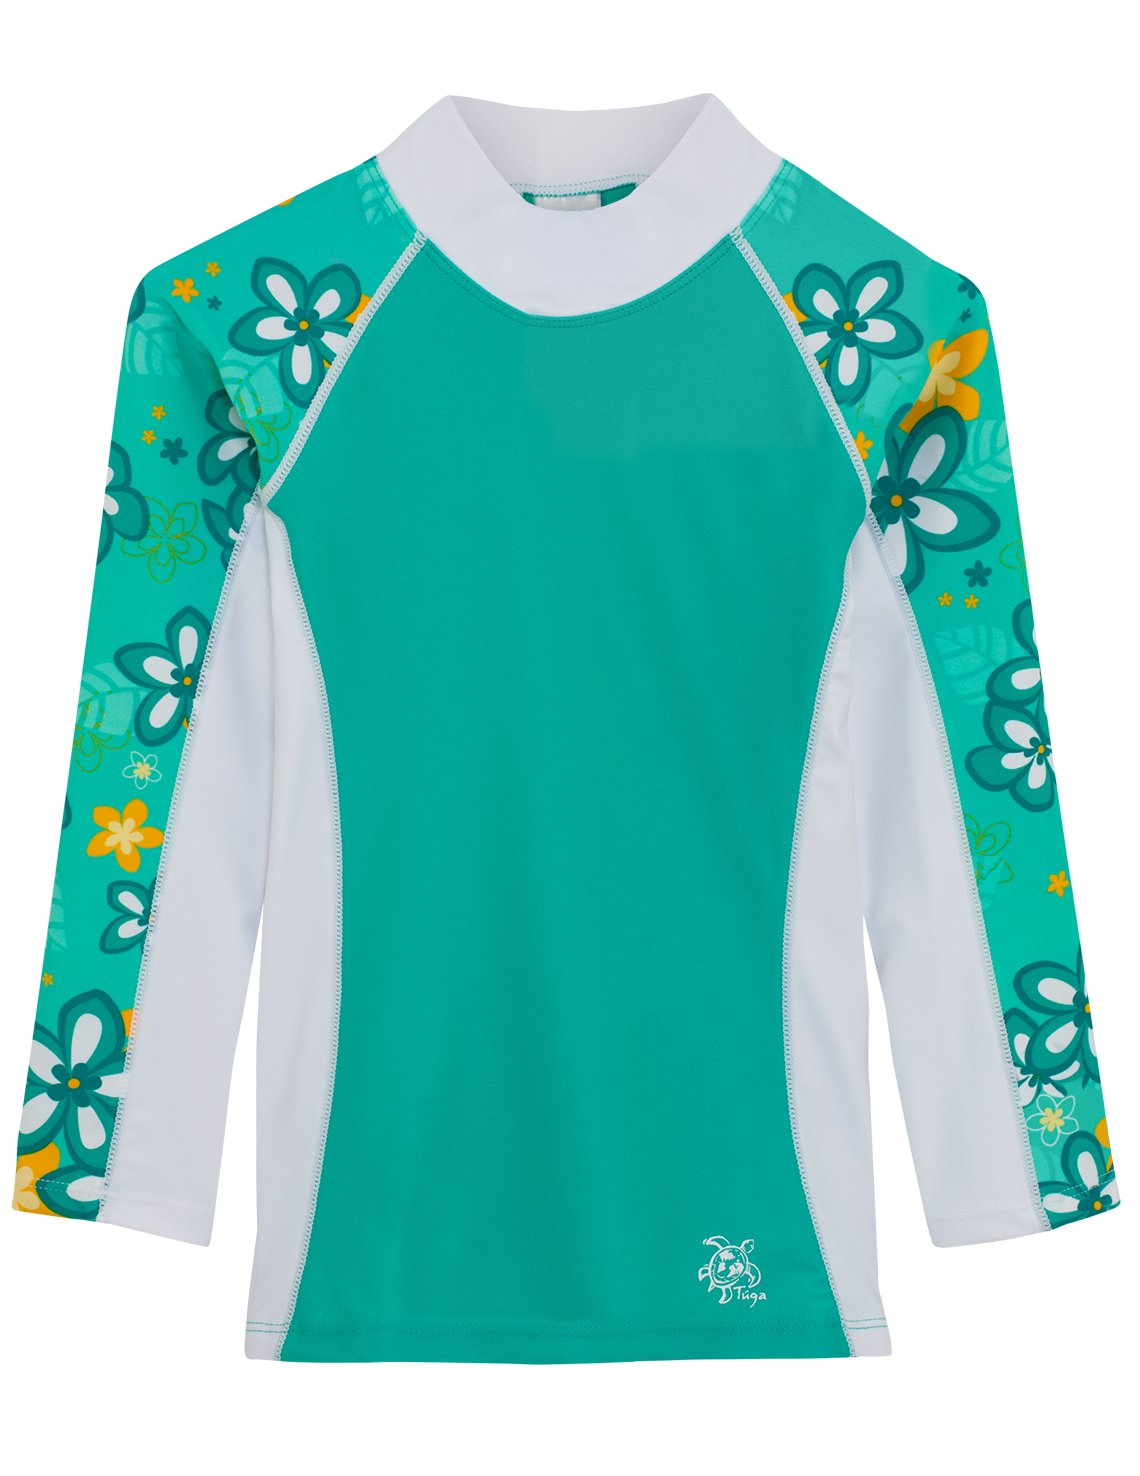 Tuga Girls Long Sleeve Rash Guards 1-14 Years, UPF 50+ Sun Protection Swim Shirt Plangea